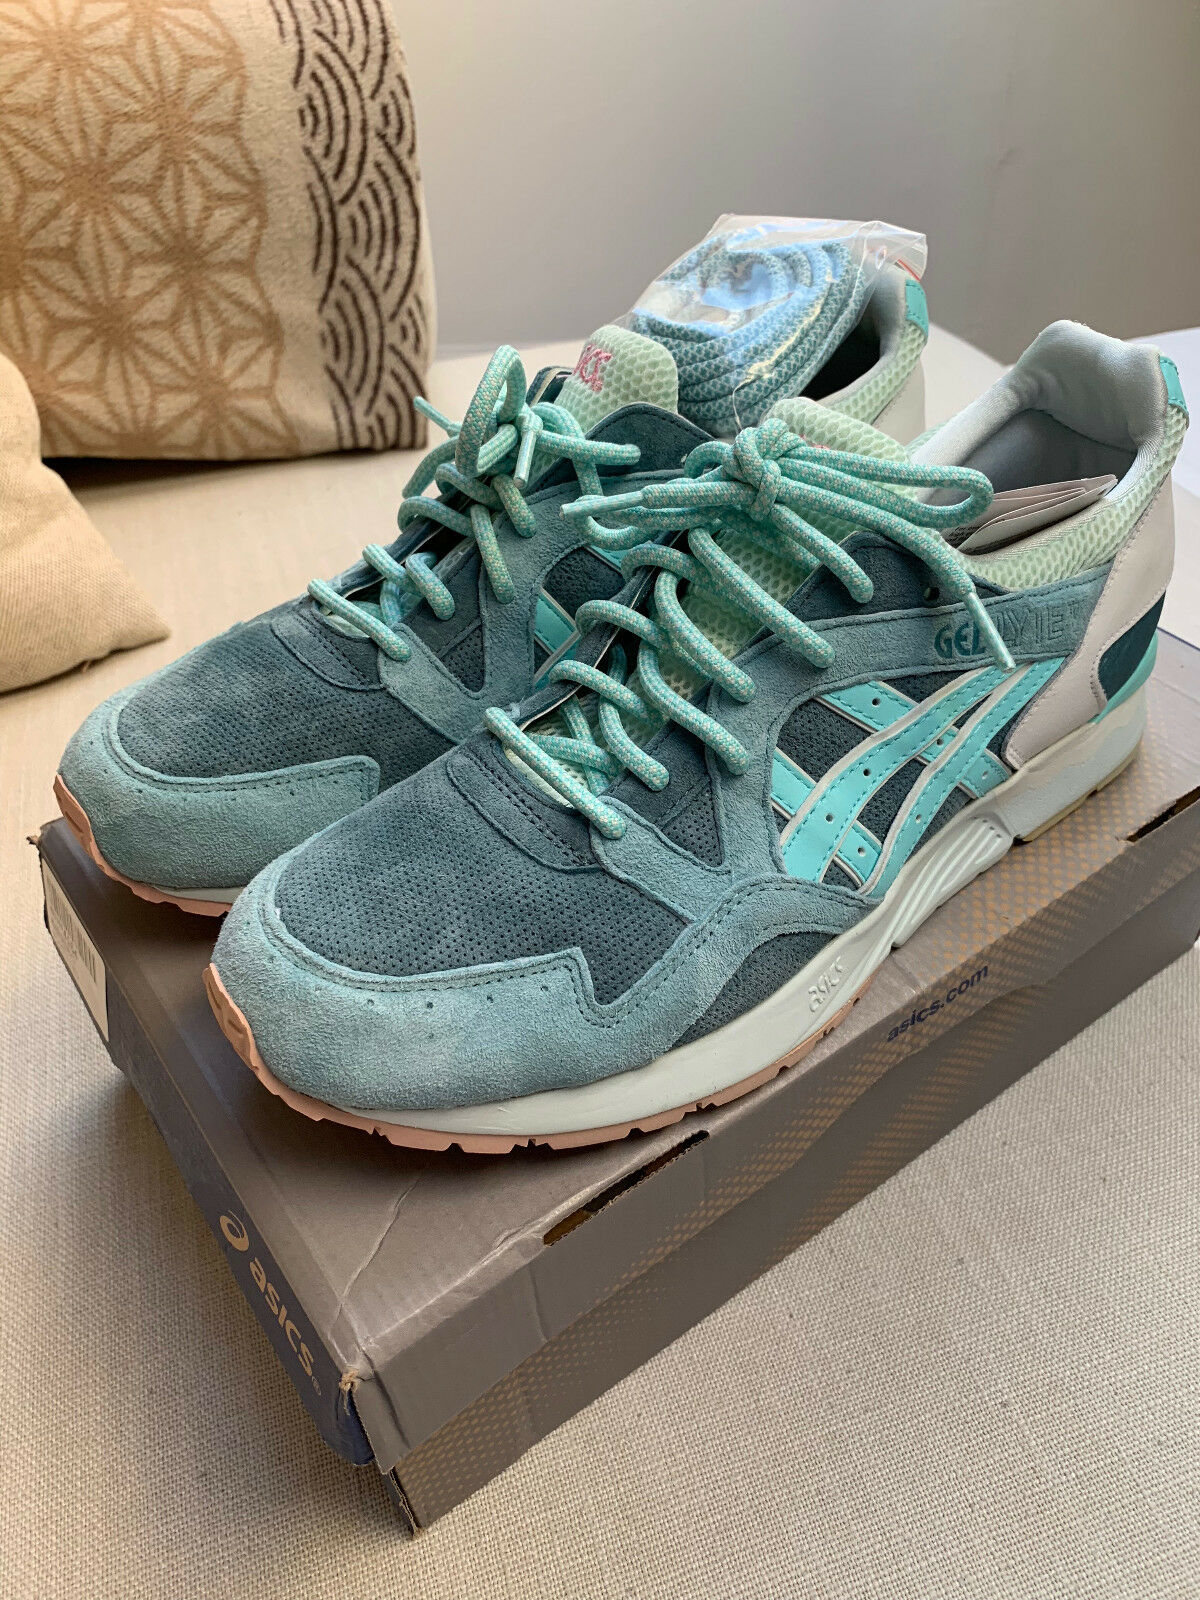 Neu  Asics x Ronnie Fieg Gel Lyte V Sage (Dark Grün   Mint) EU 45,5 US 12 UK 11